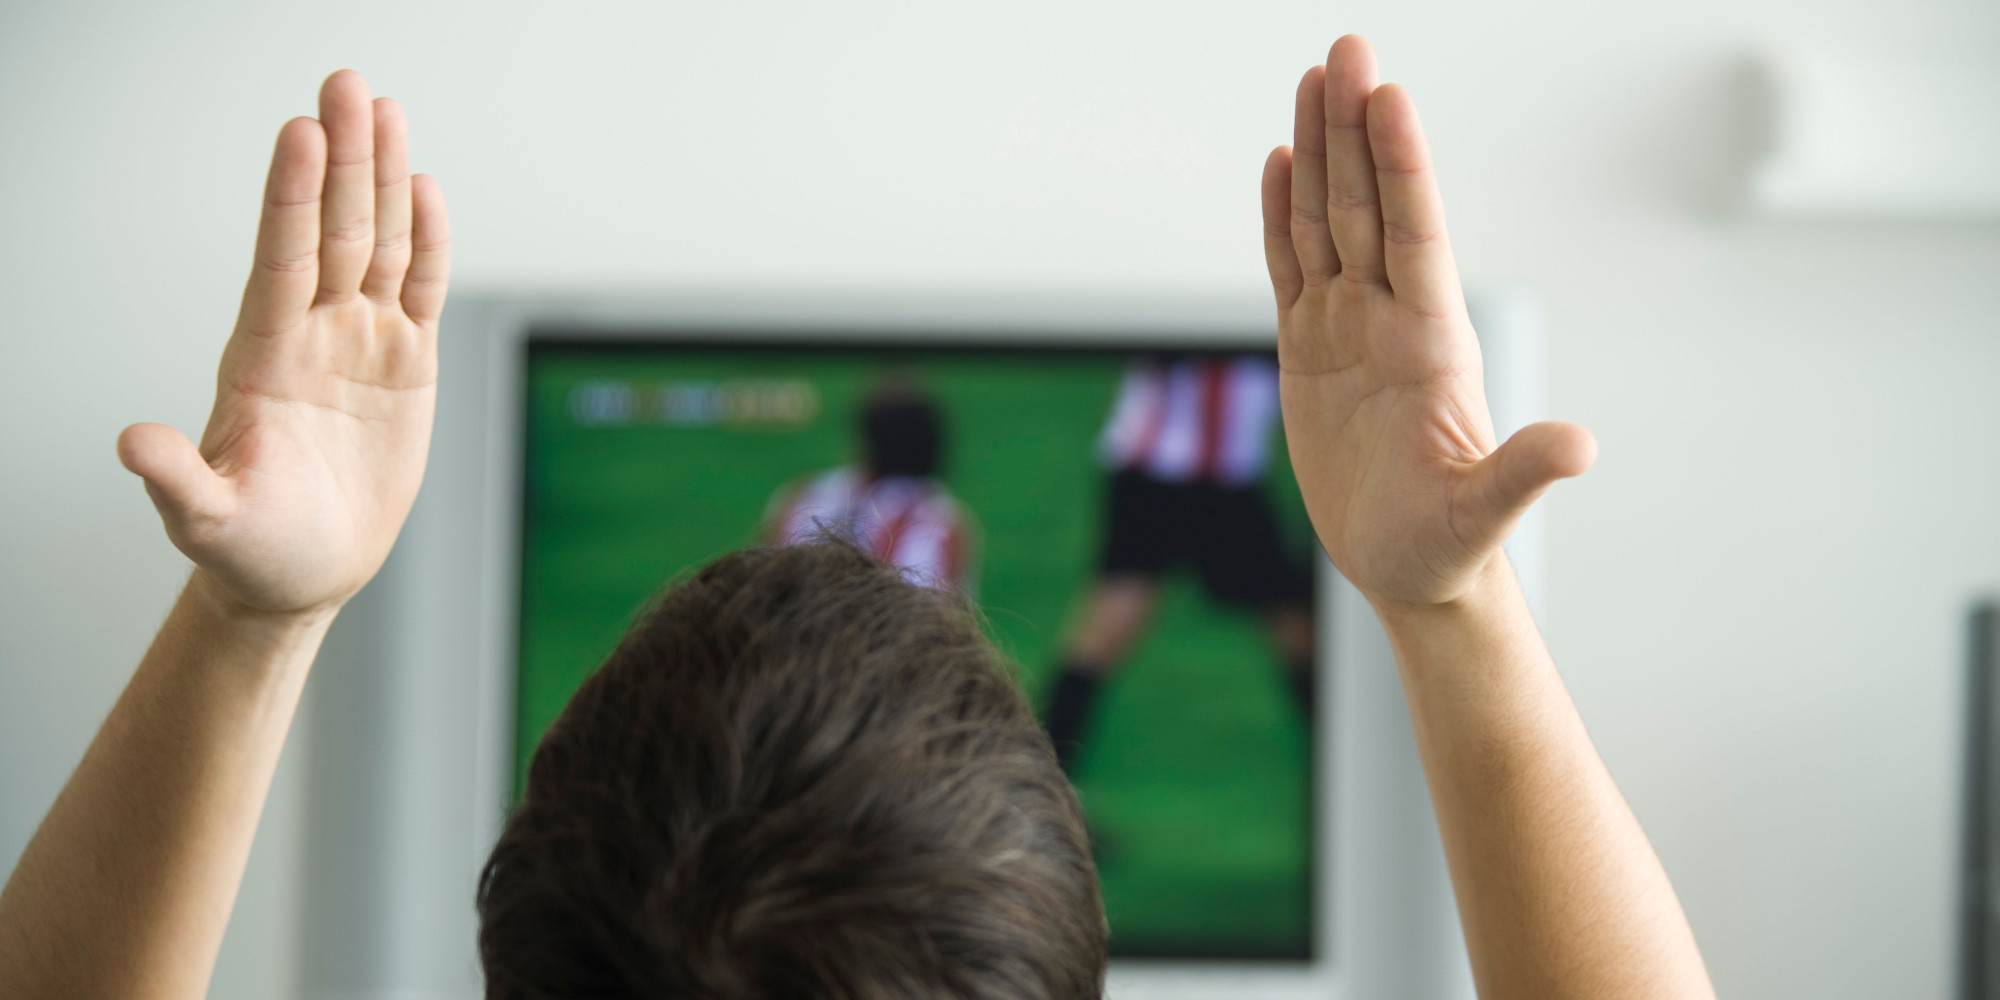 B9Y5J5 Male watching sports match on television, hands raised in air, rear view